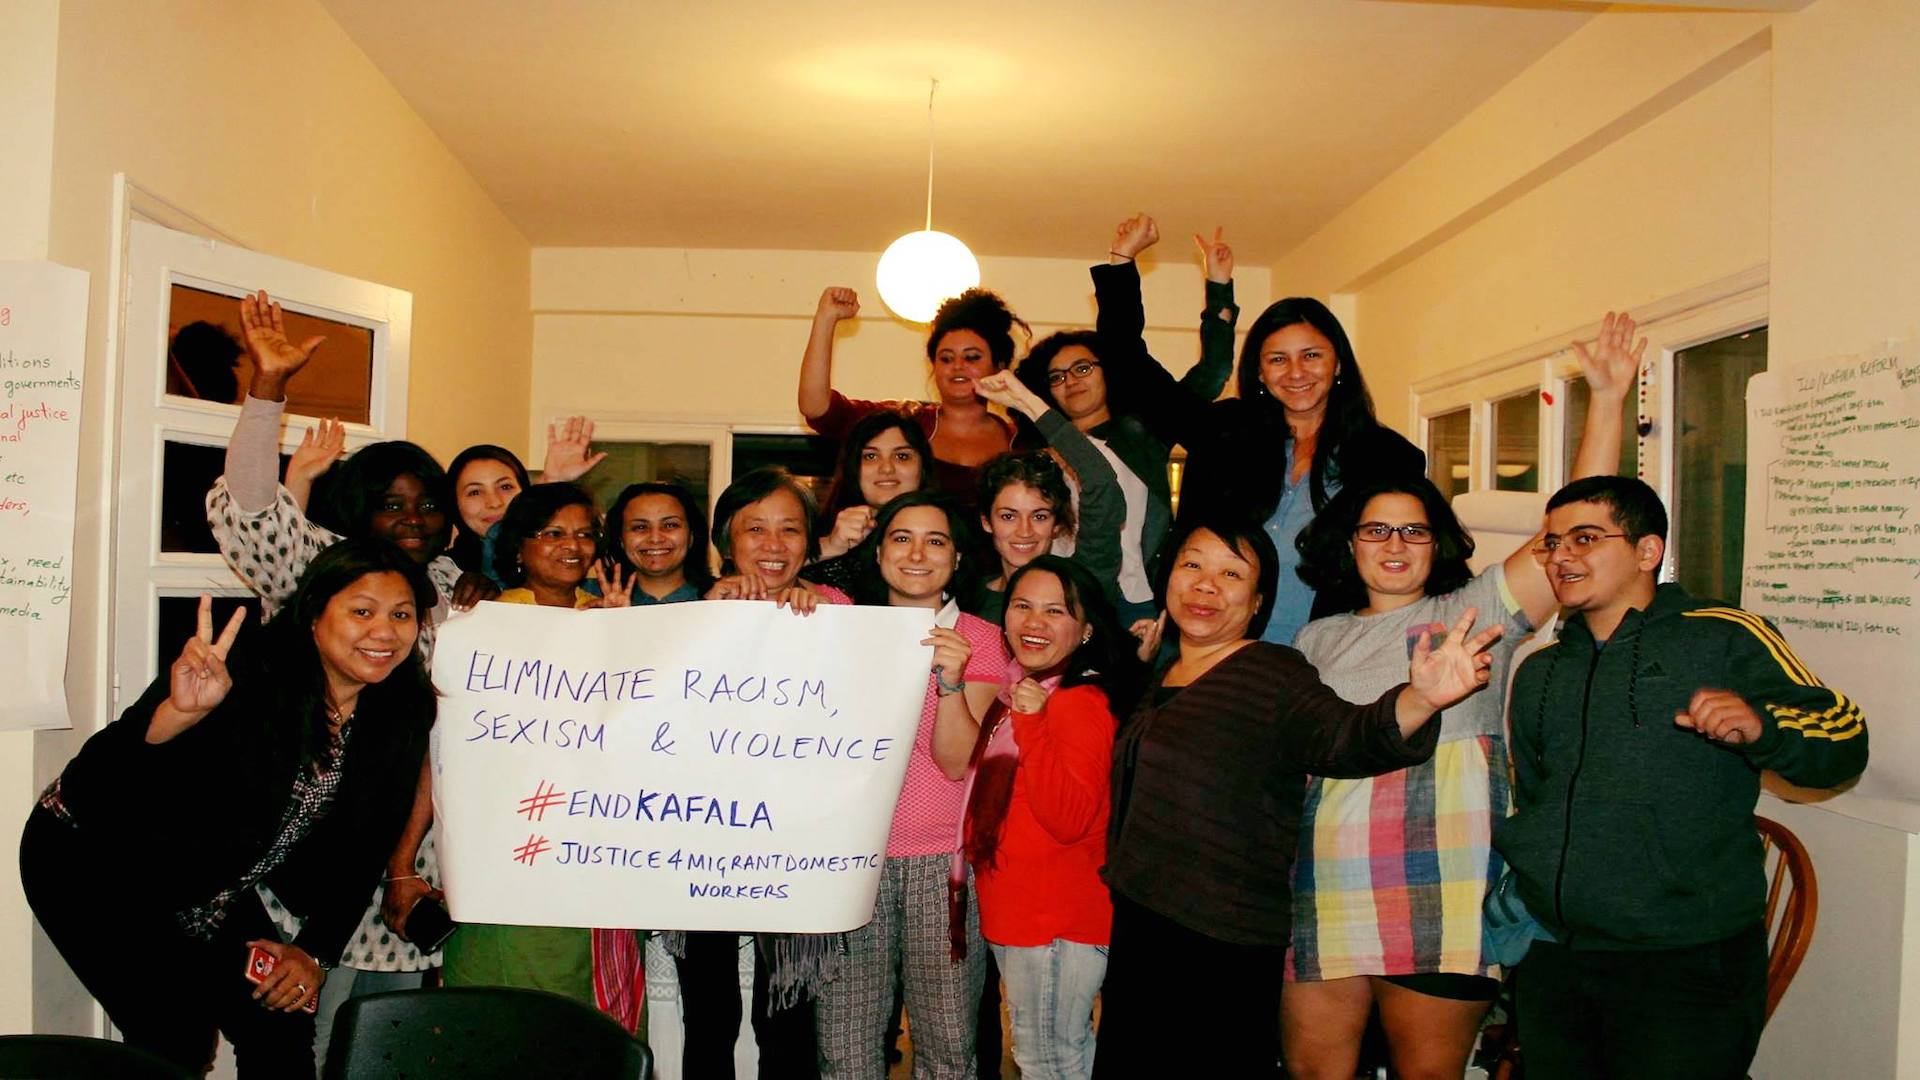 A group of activists holding a sign that says Eliminate racism, sexism and violence and #EndKafala